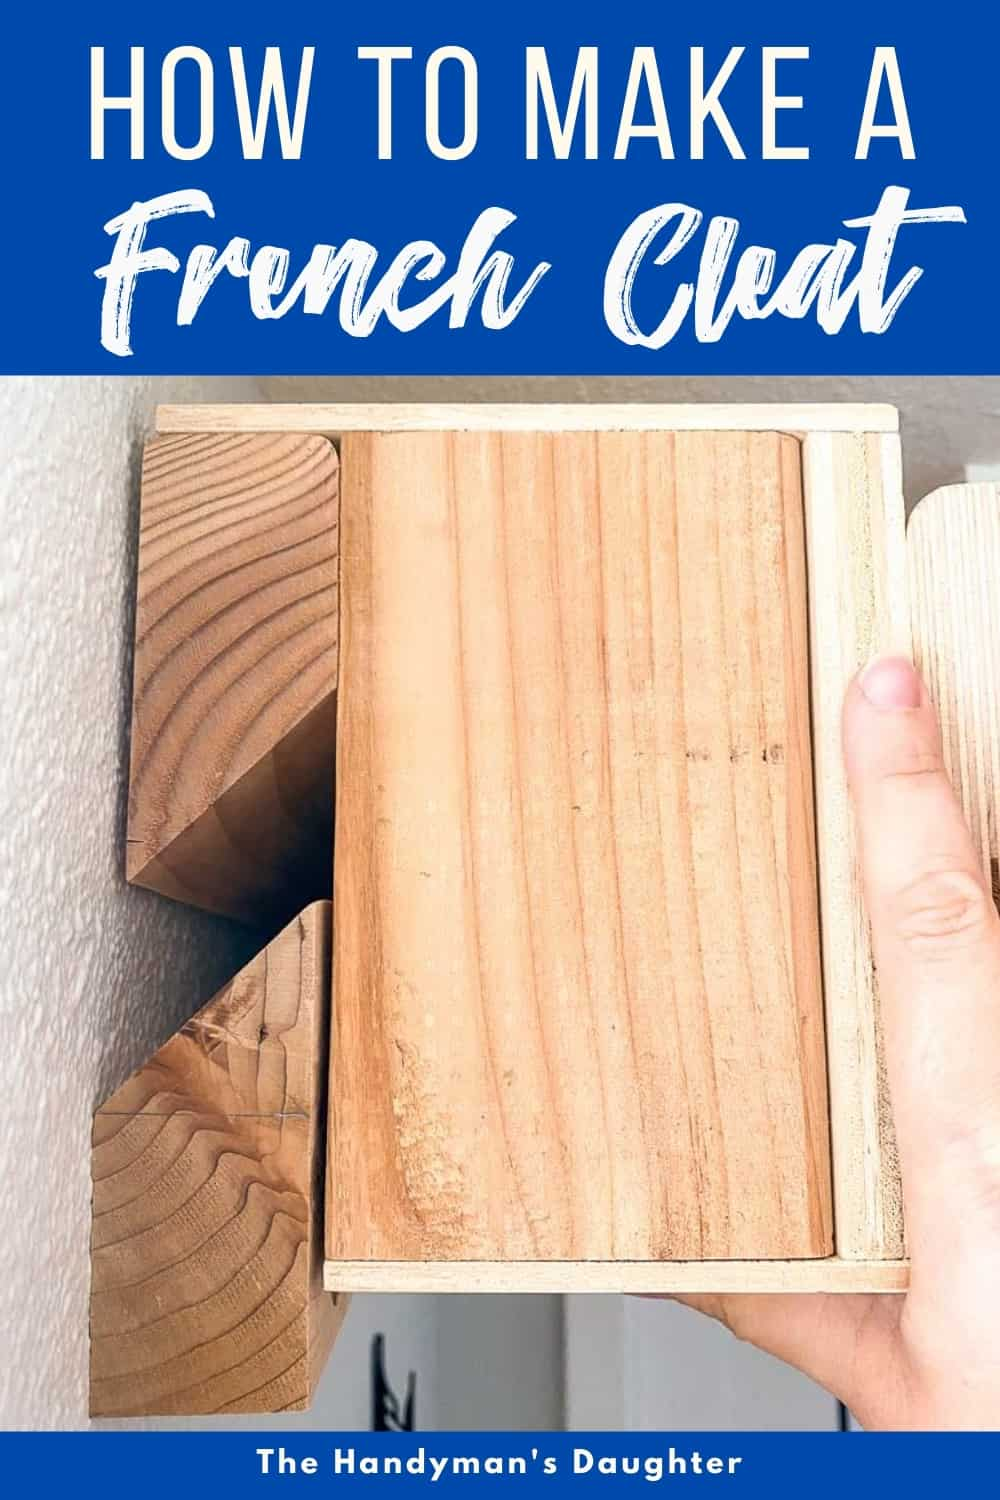 How to Make a French Cleat